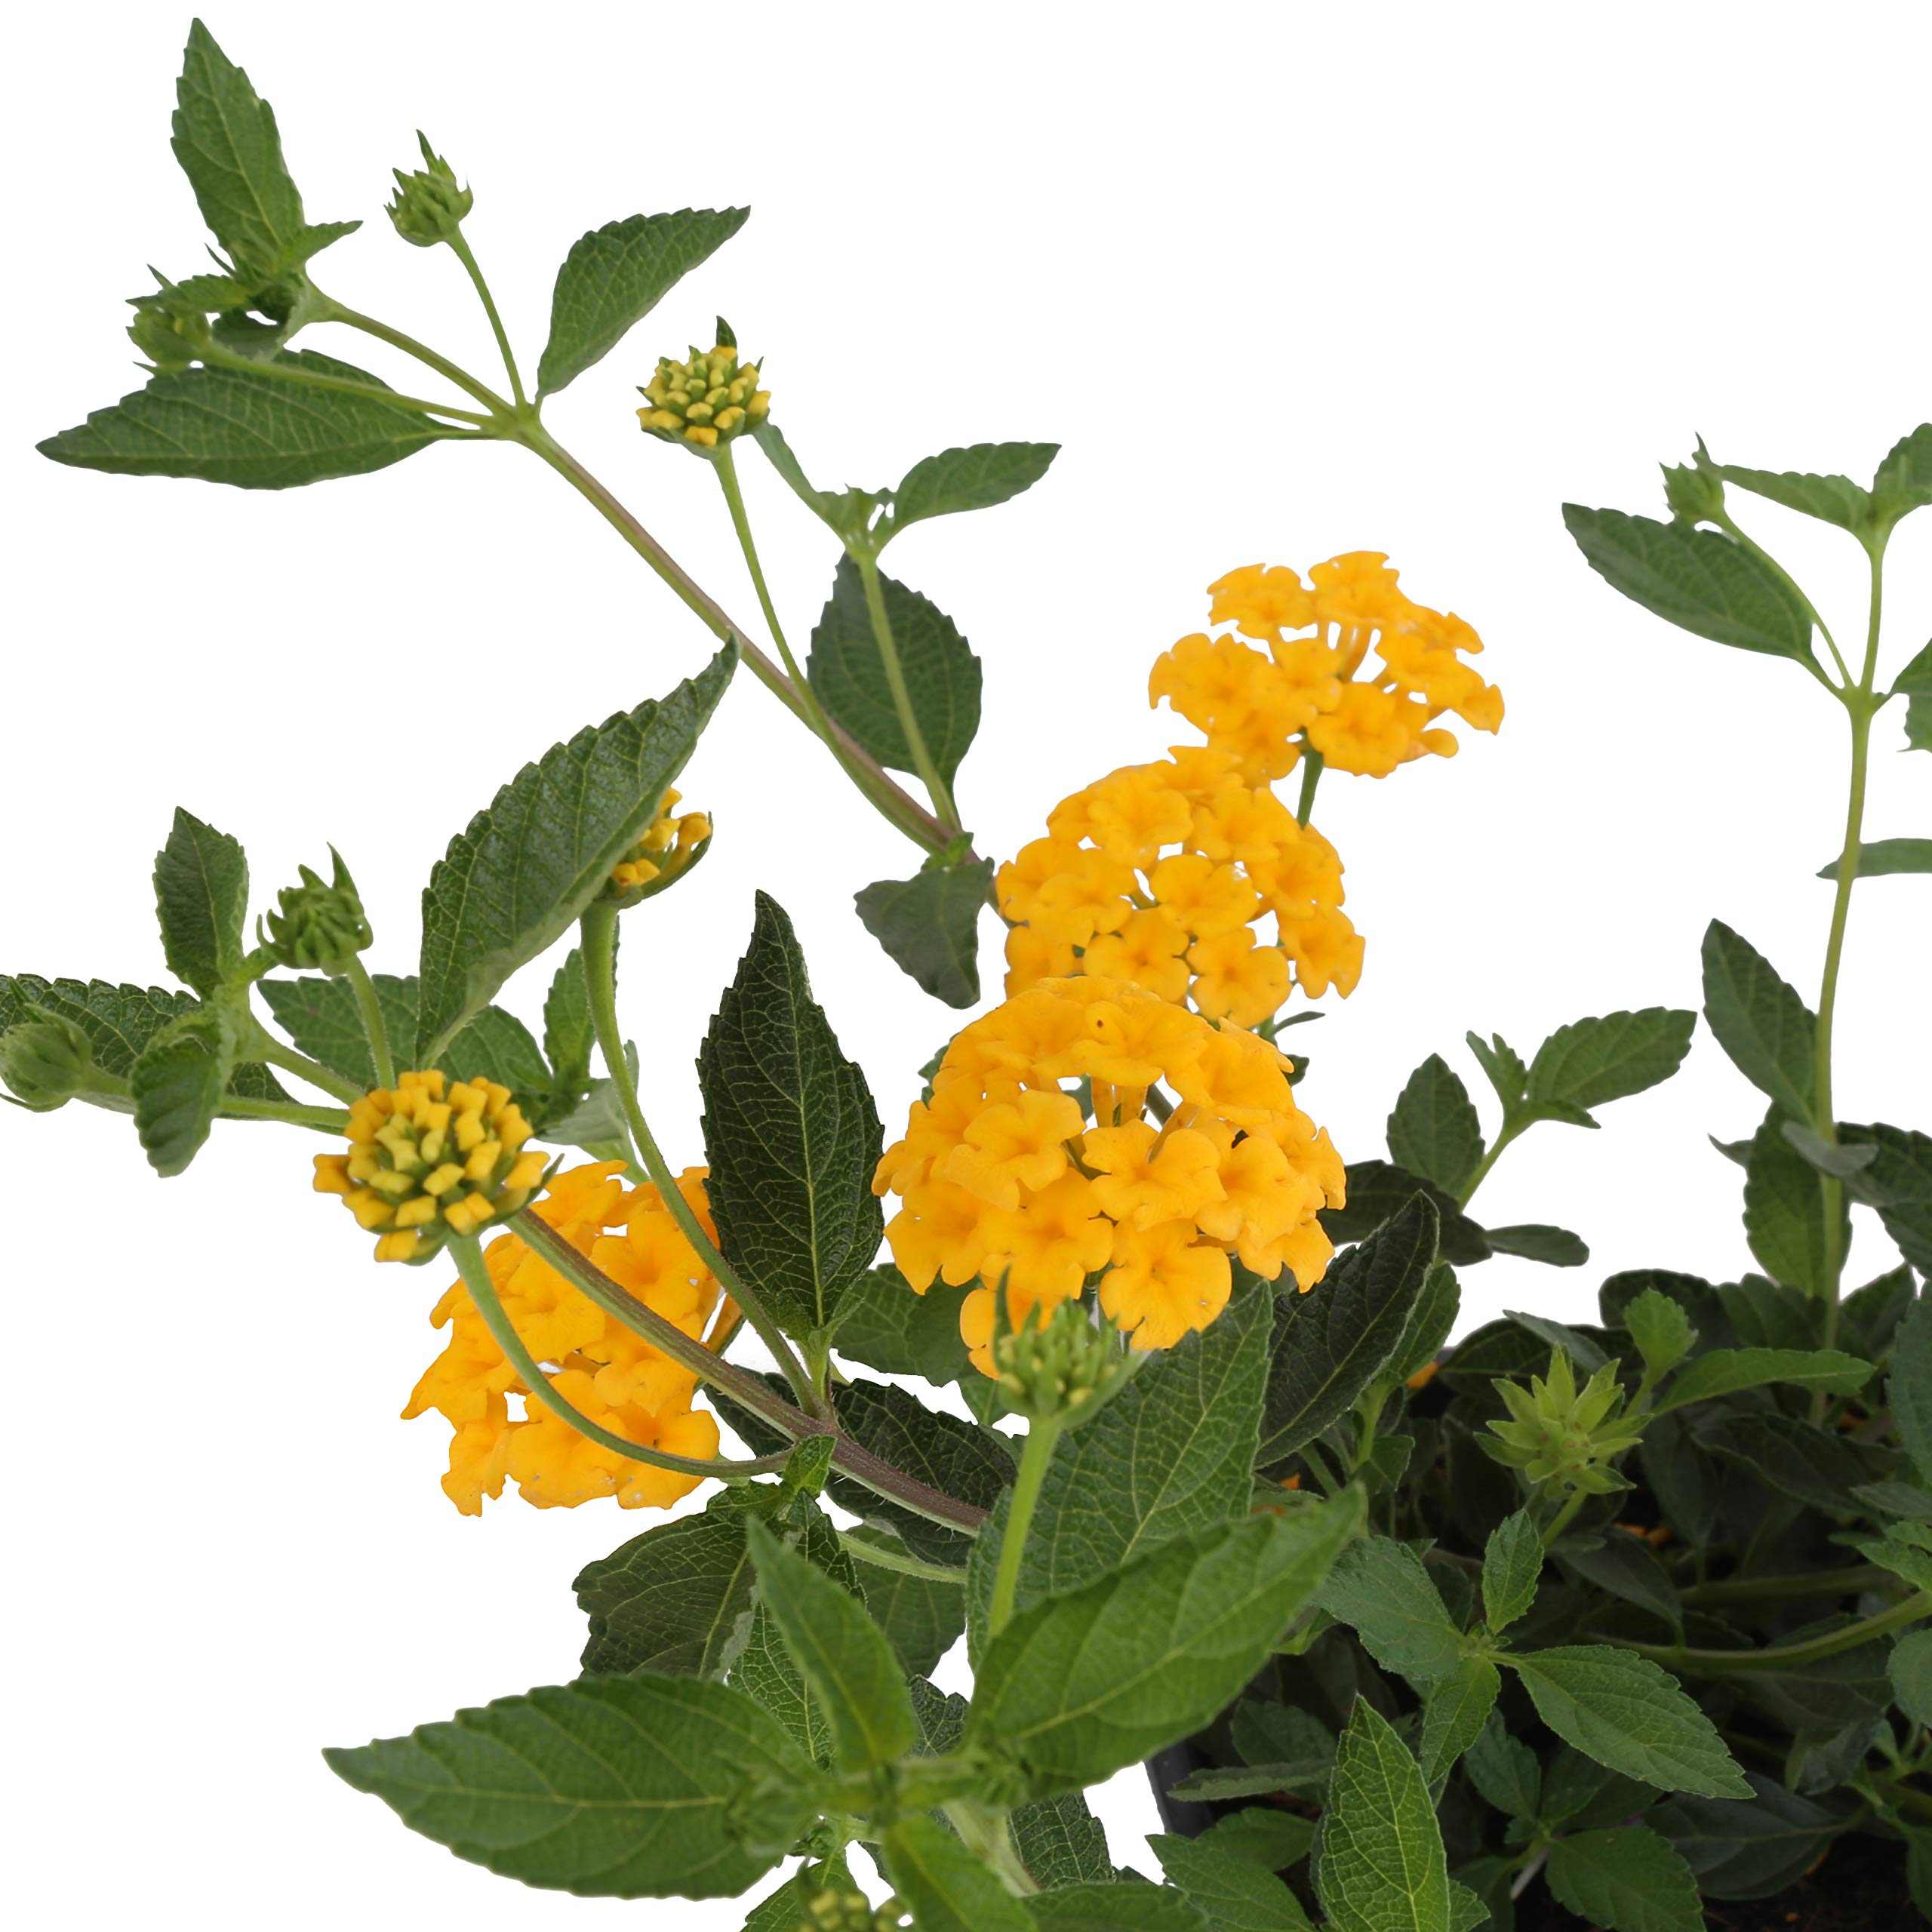 Costa Farms Live Premium Lantana Plant 1.00 qt Grower Pot, 8-Pack Yellow by Costa Farms (Image #3)